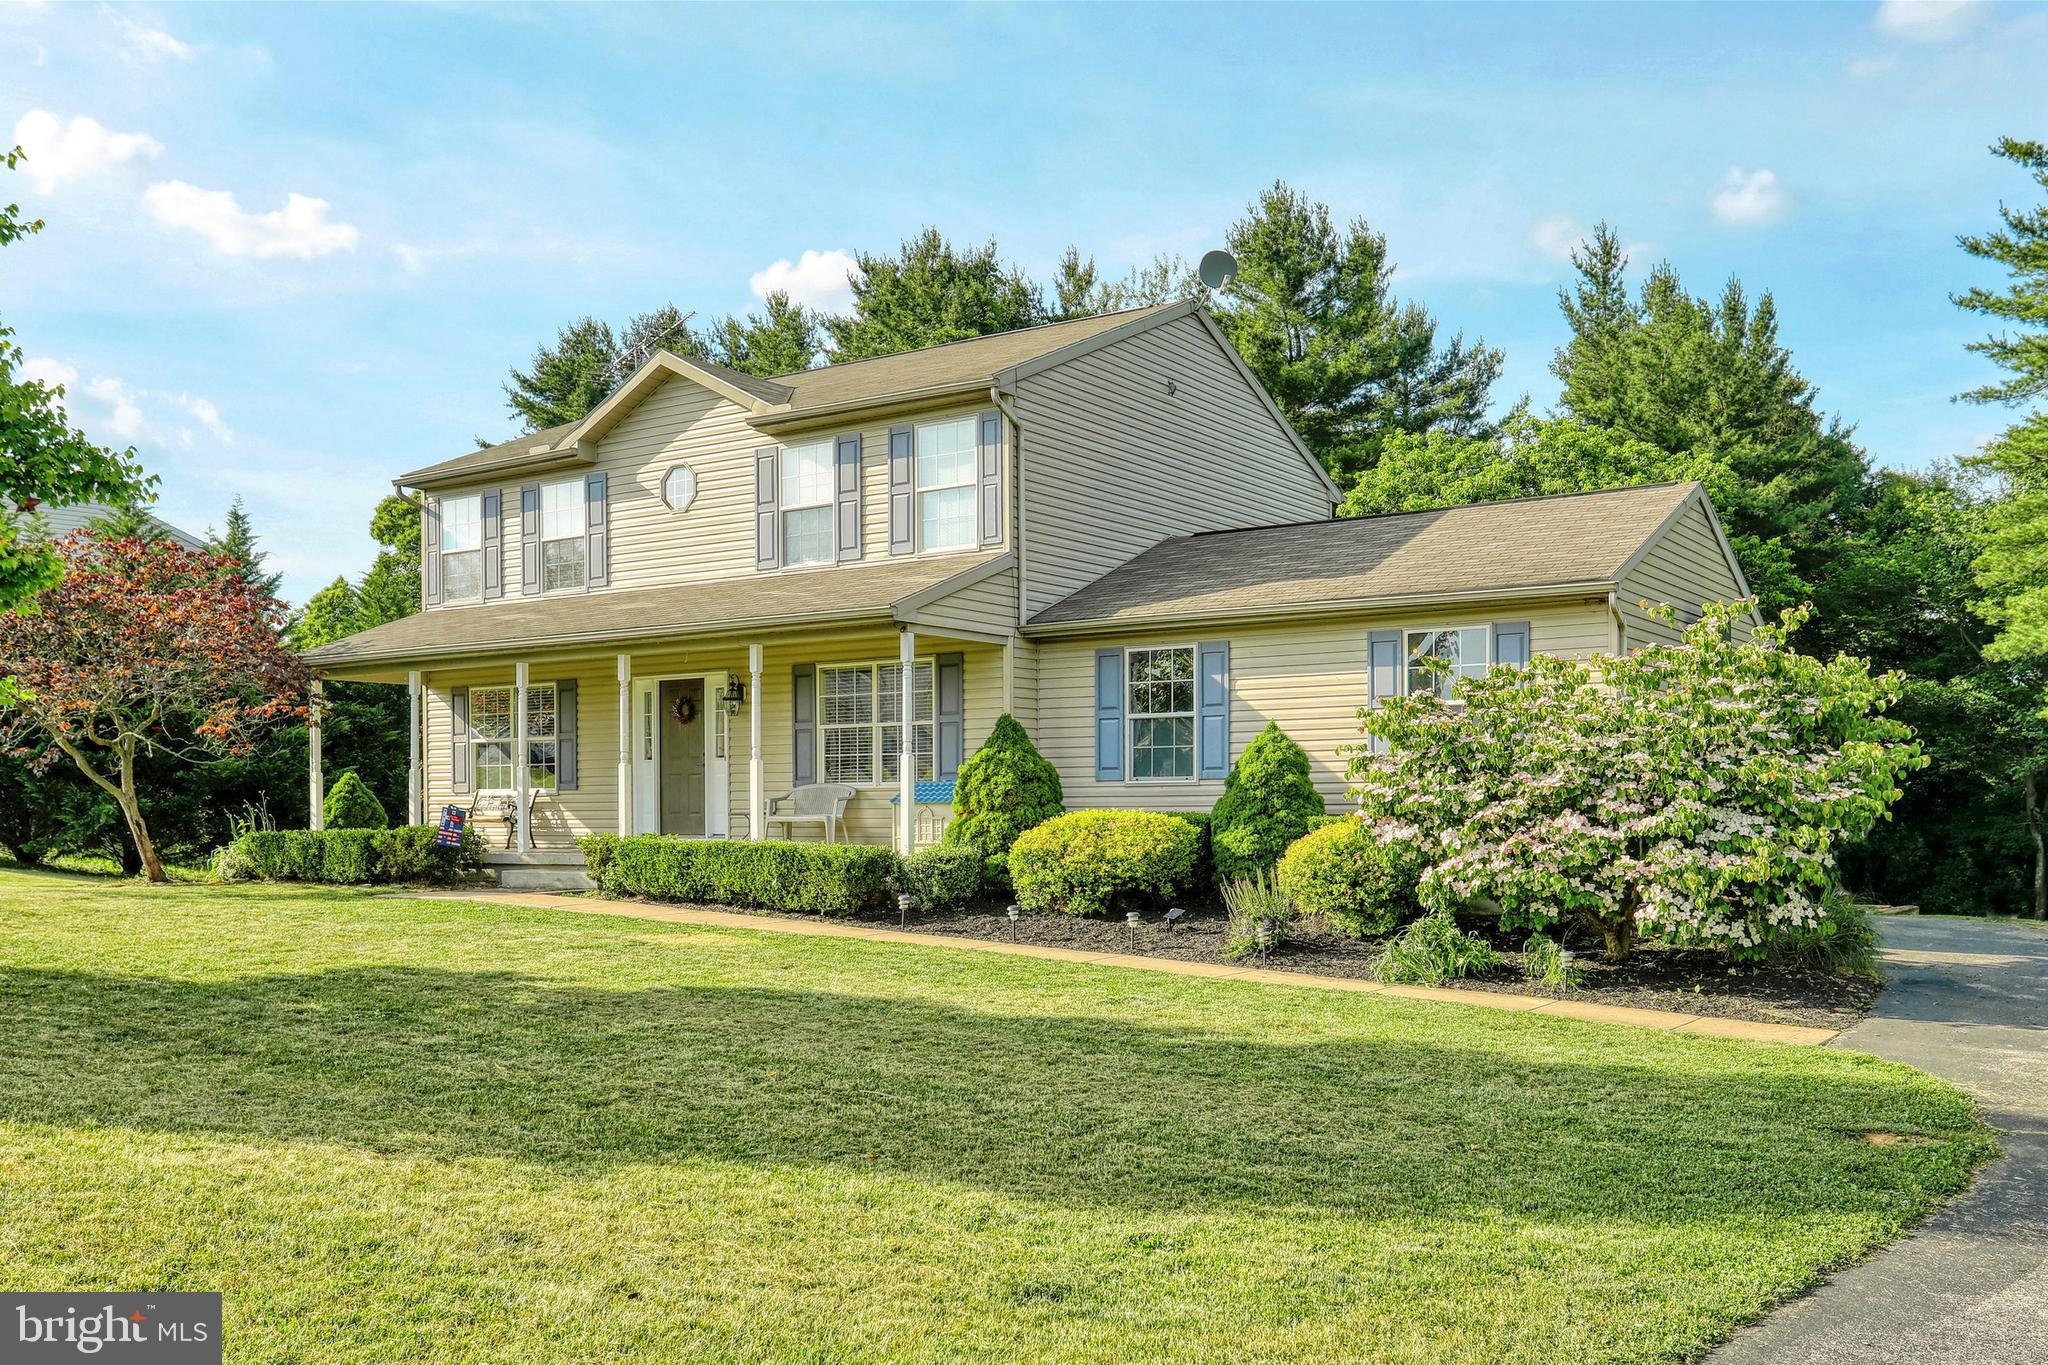 15395 SPARKLIN SPRINGS LANE, AIRVILLE, PA 17302